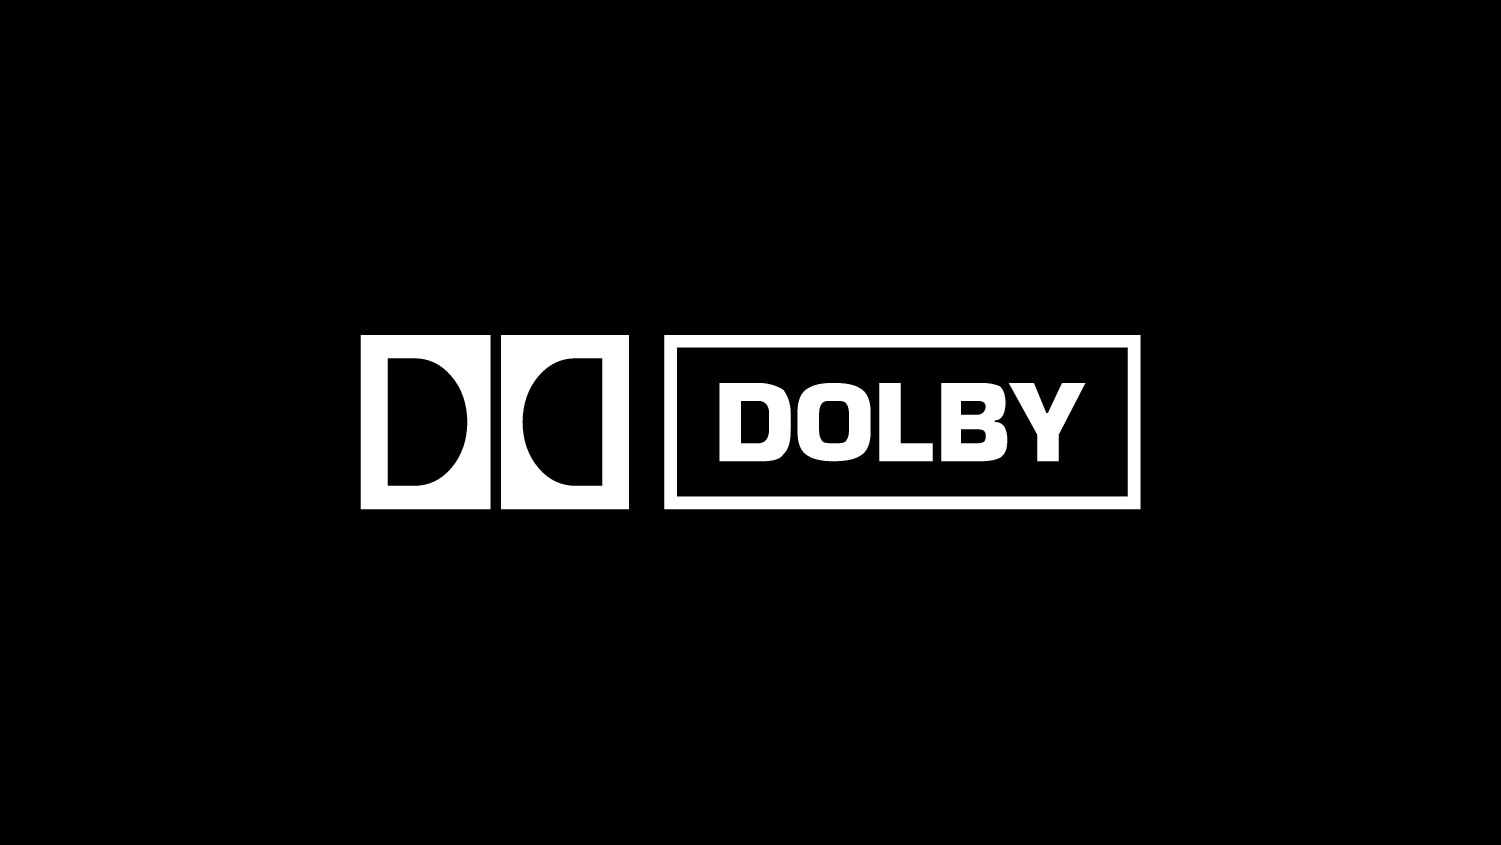 Dolby Digital In Selected Theatres Logo Dolby in selected theatresDolby Digital In Selected Theatres Logo